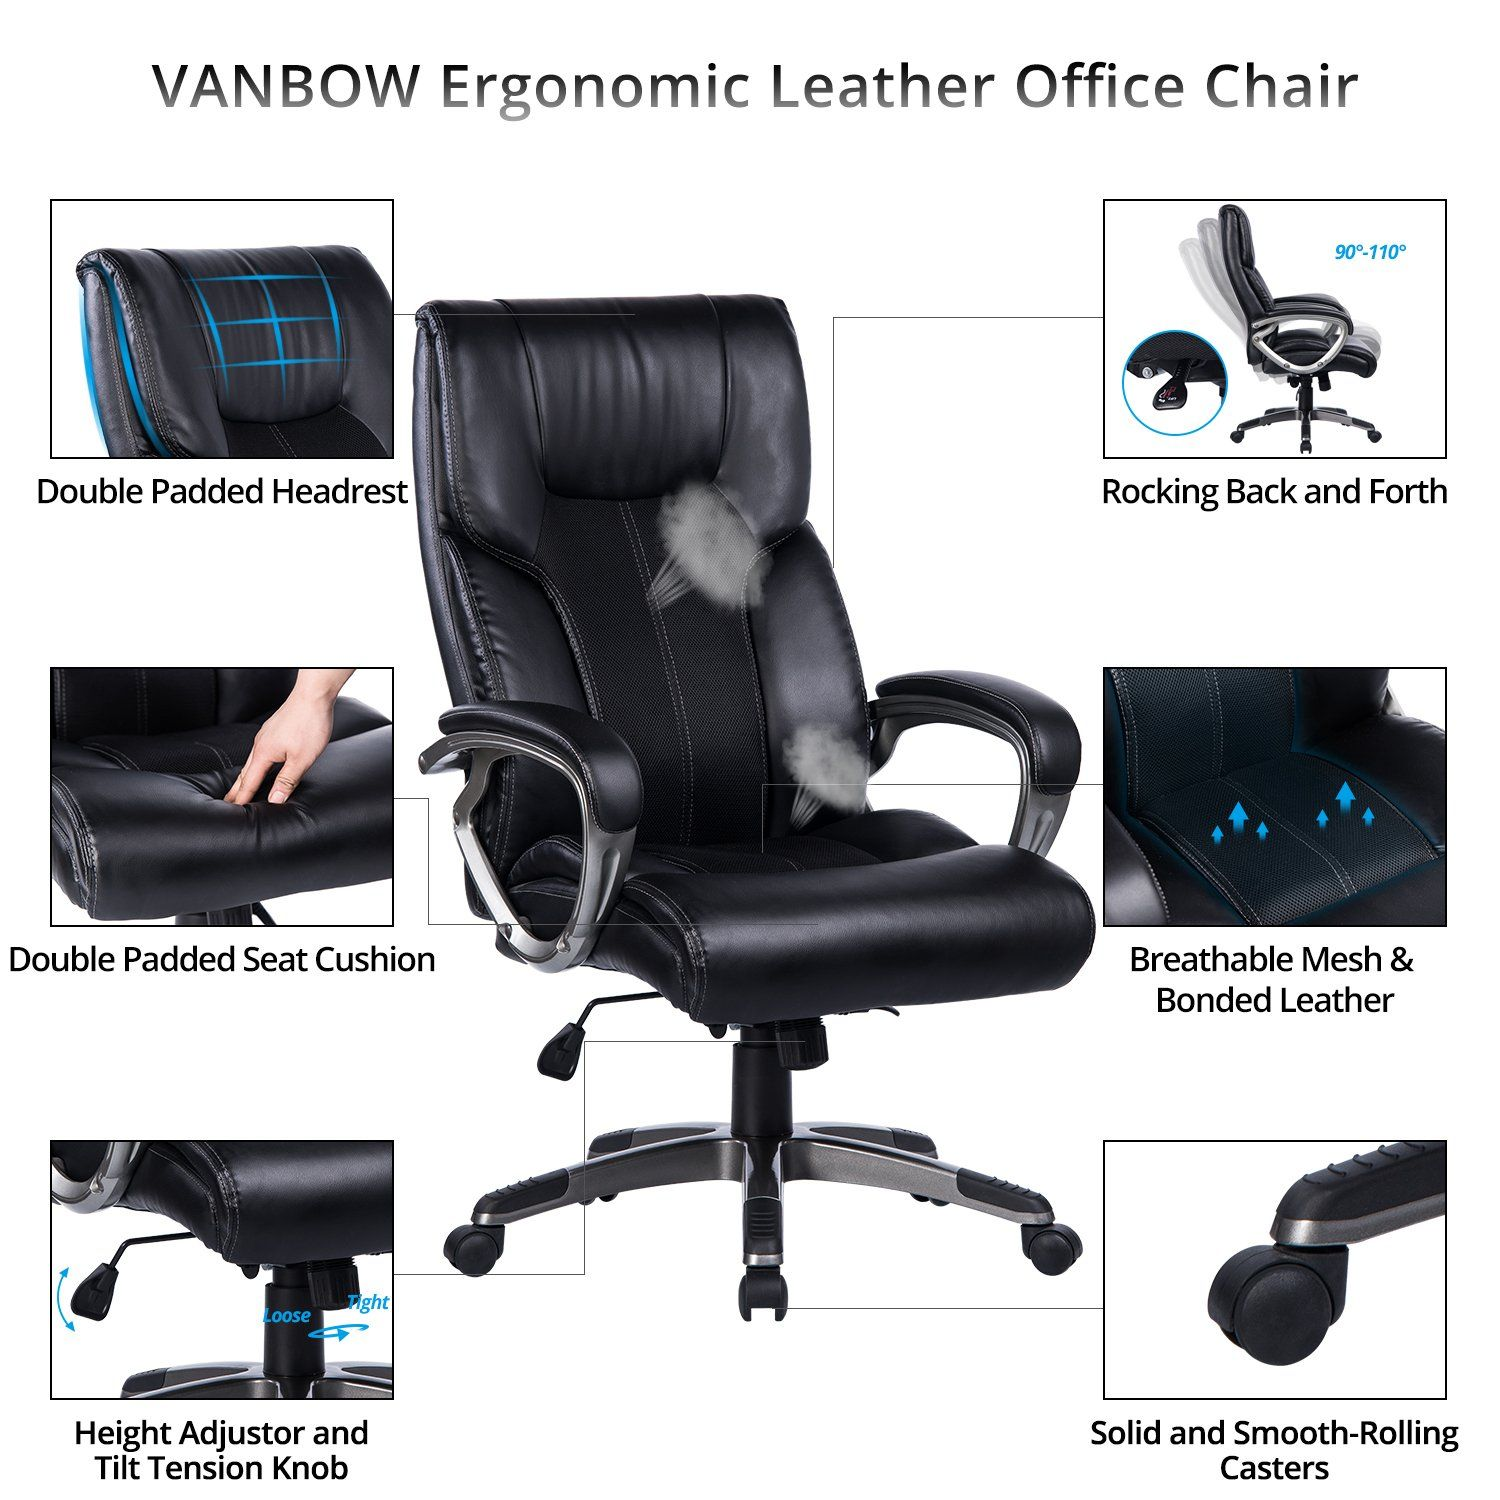 Vanbow High Back Office Chair 90a 110a Rocking And Lock Function